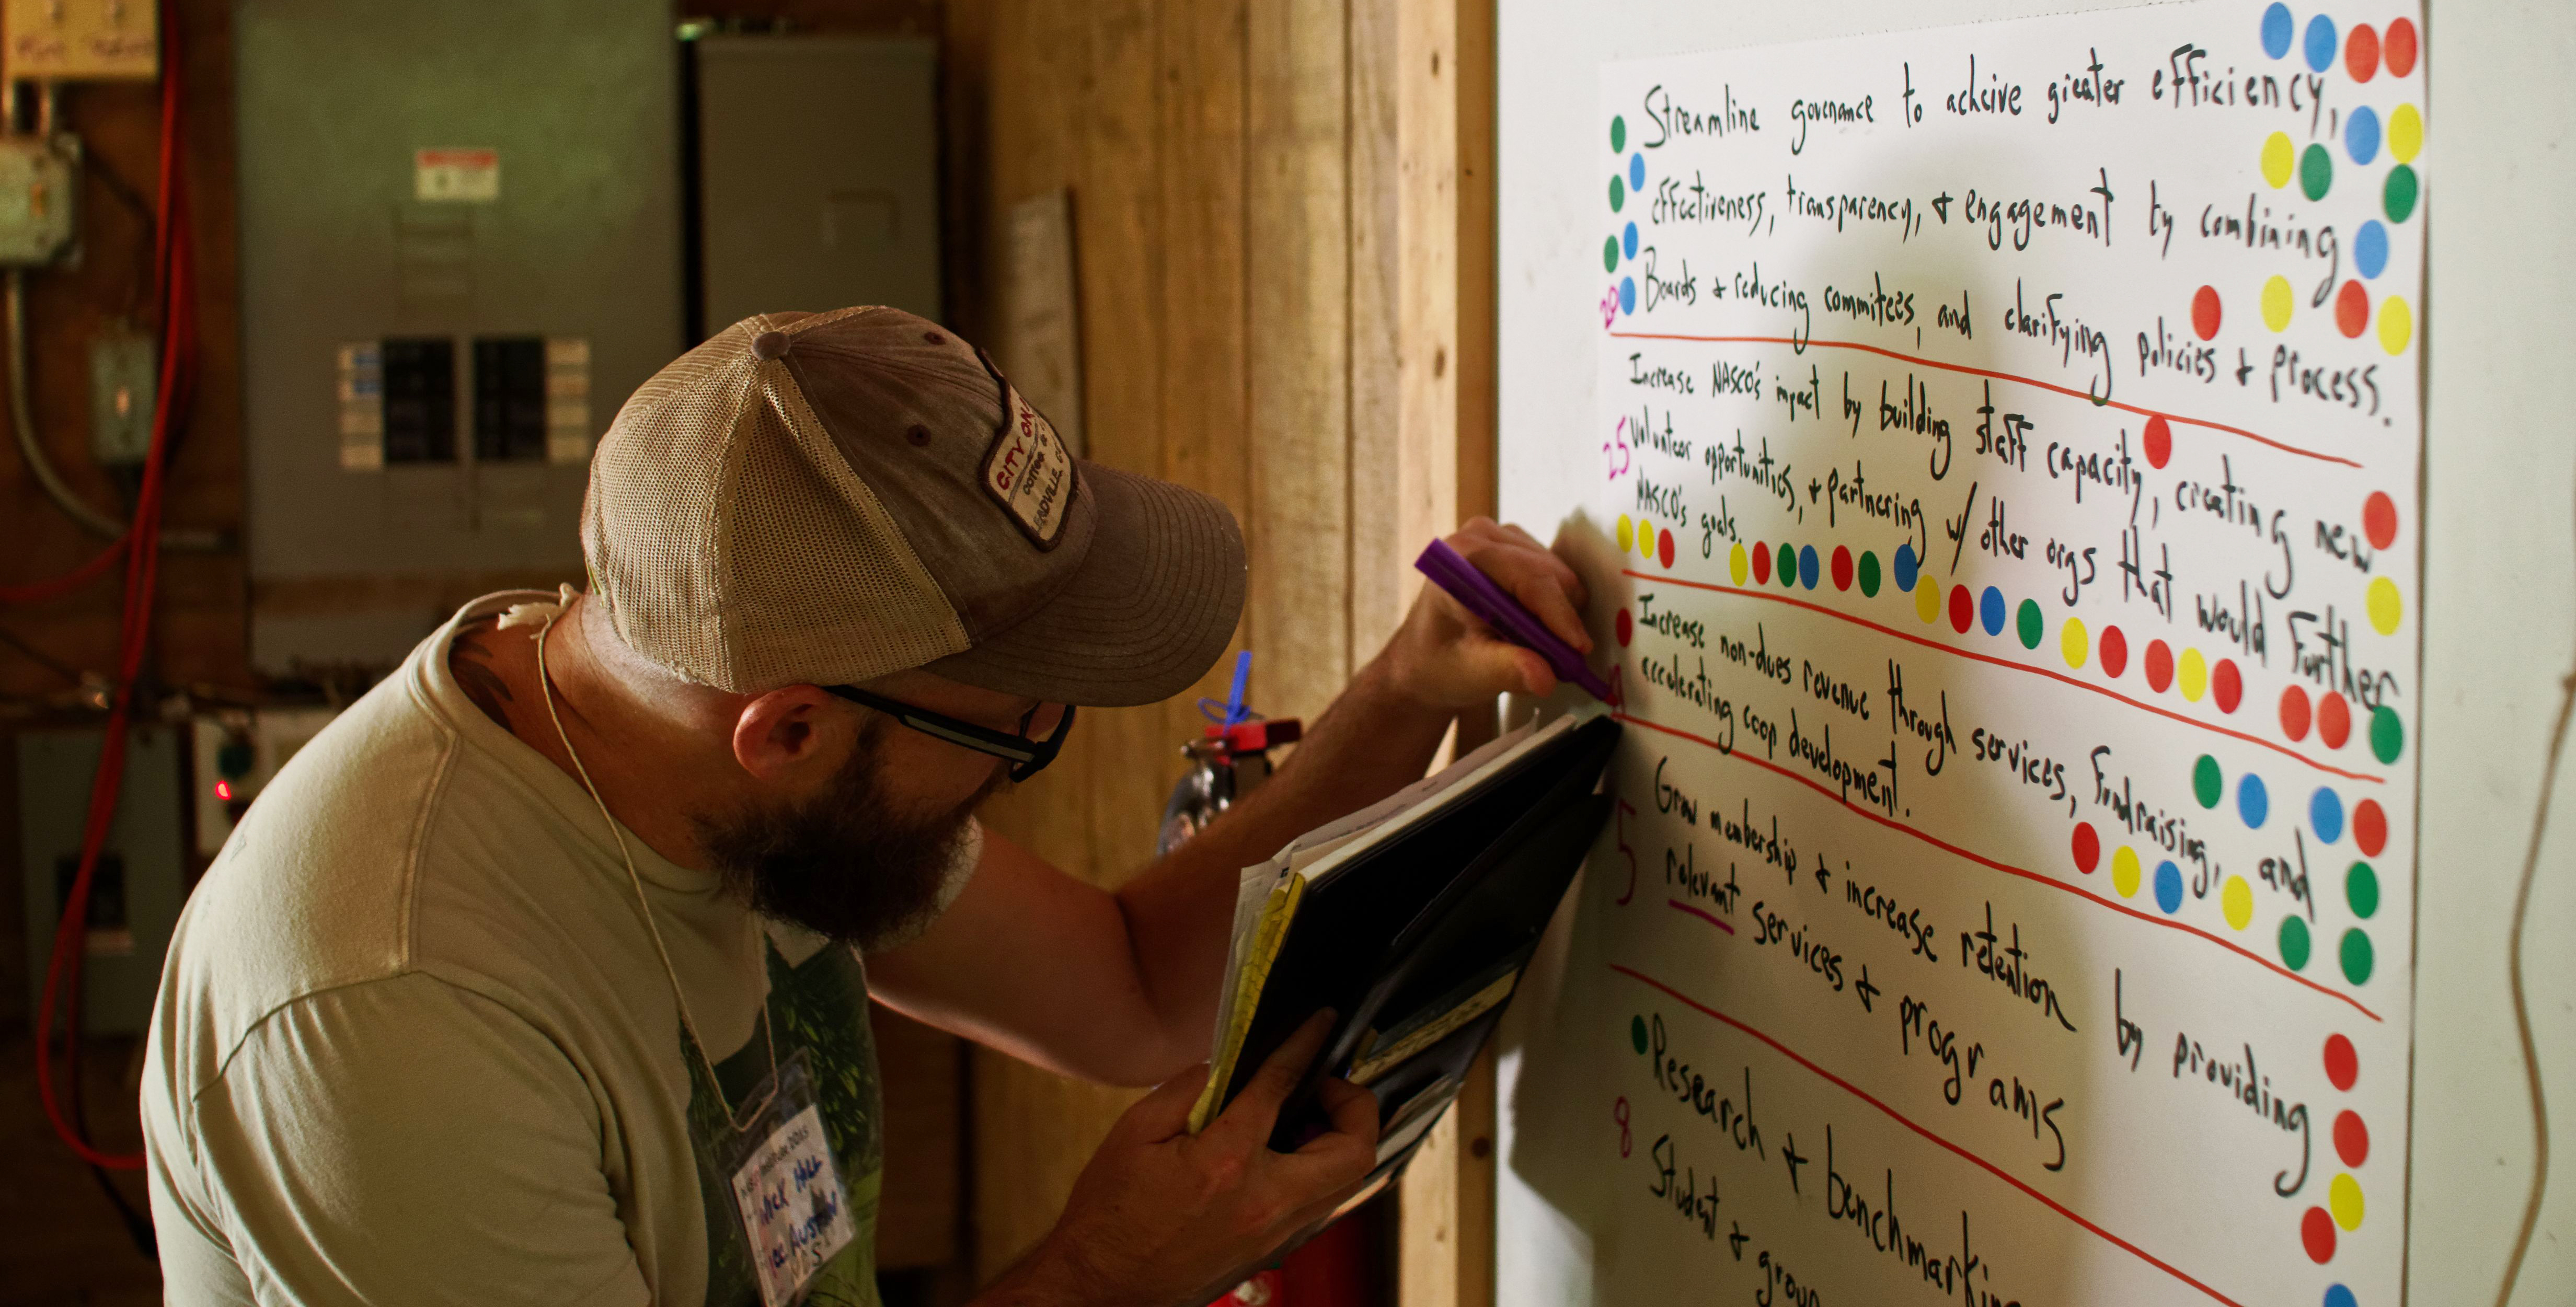 Cooperator adding text to a collaborative planning poster